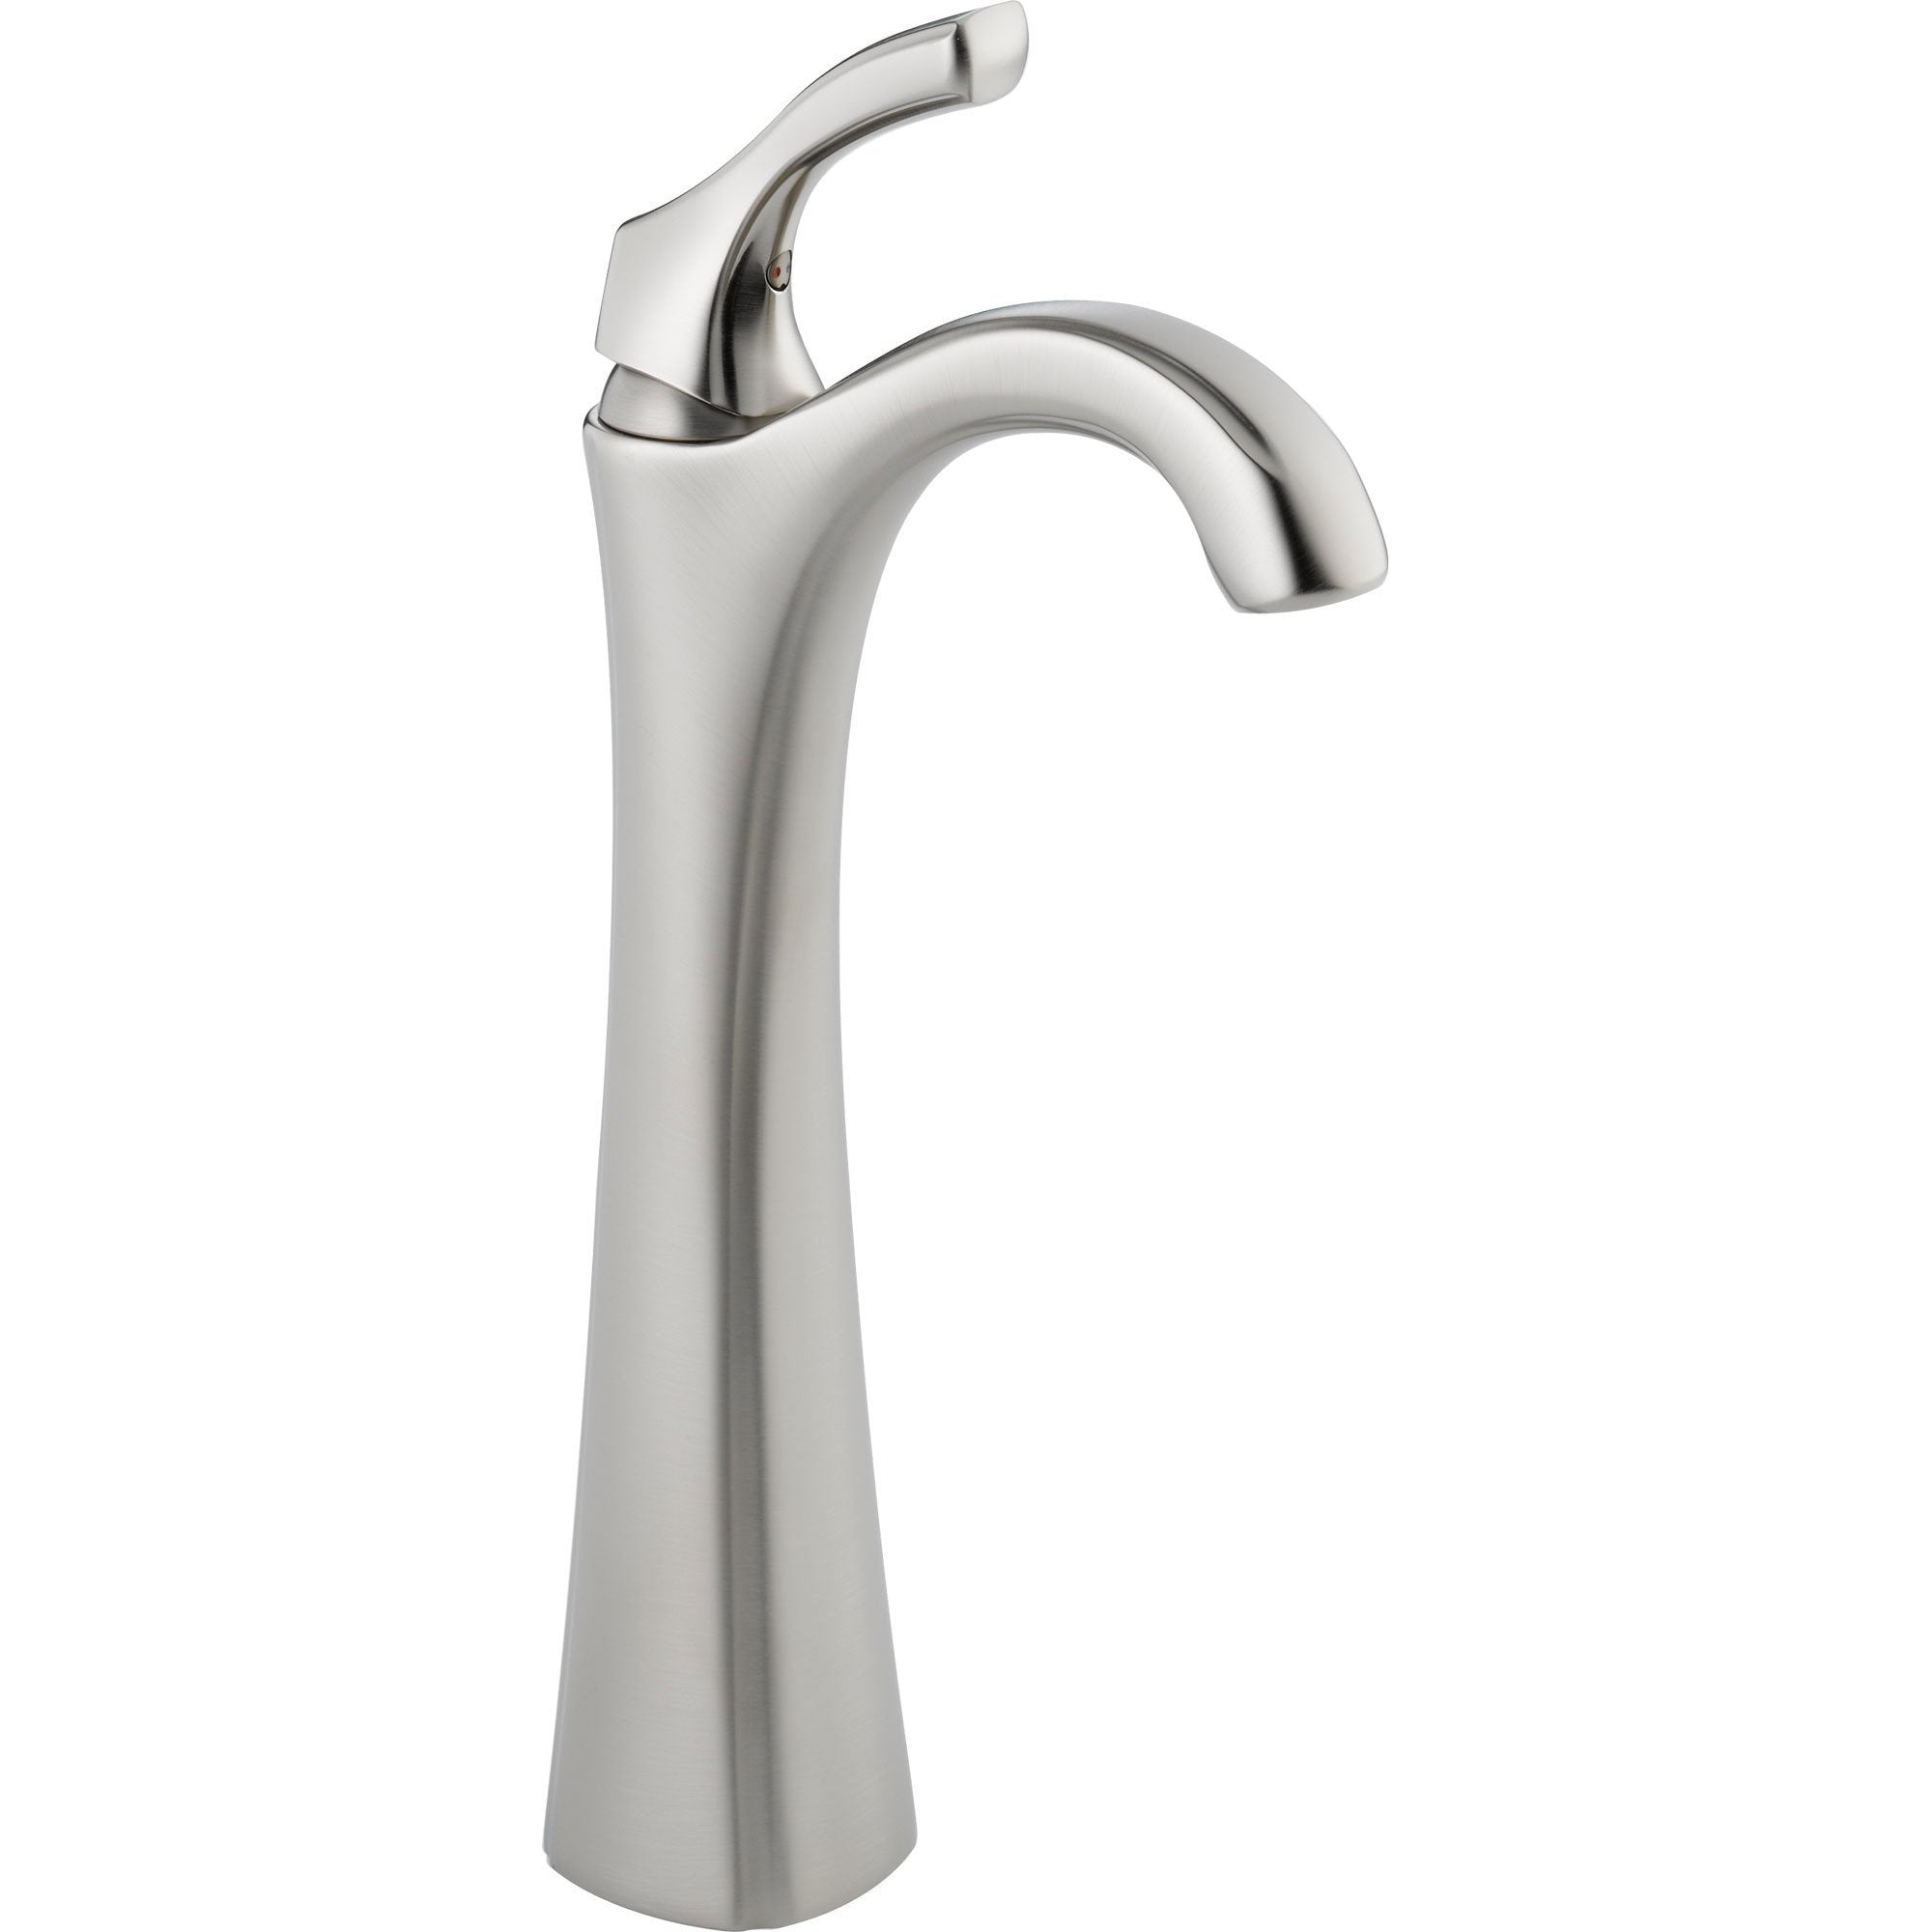 Delta Addison Single Handle Stainless Steel Finish Vessel Sink Faucet    FaucetList.com